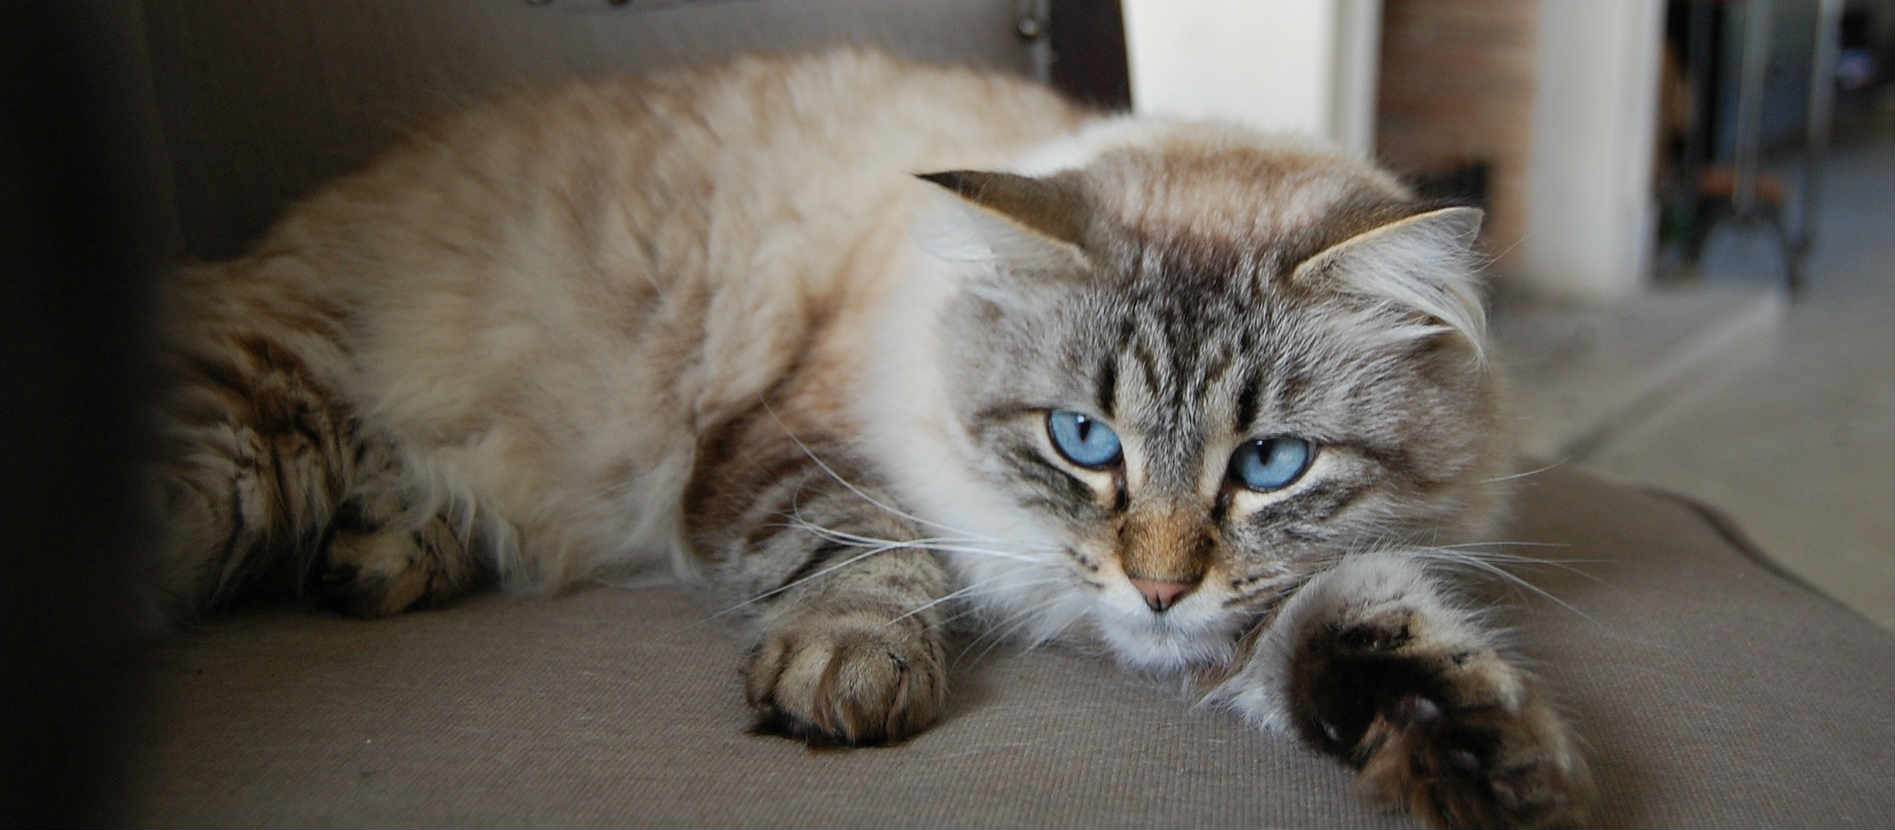 What are some common cat health problems I should be aware of?